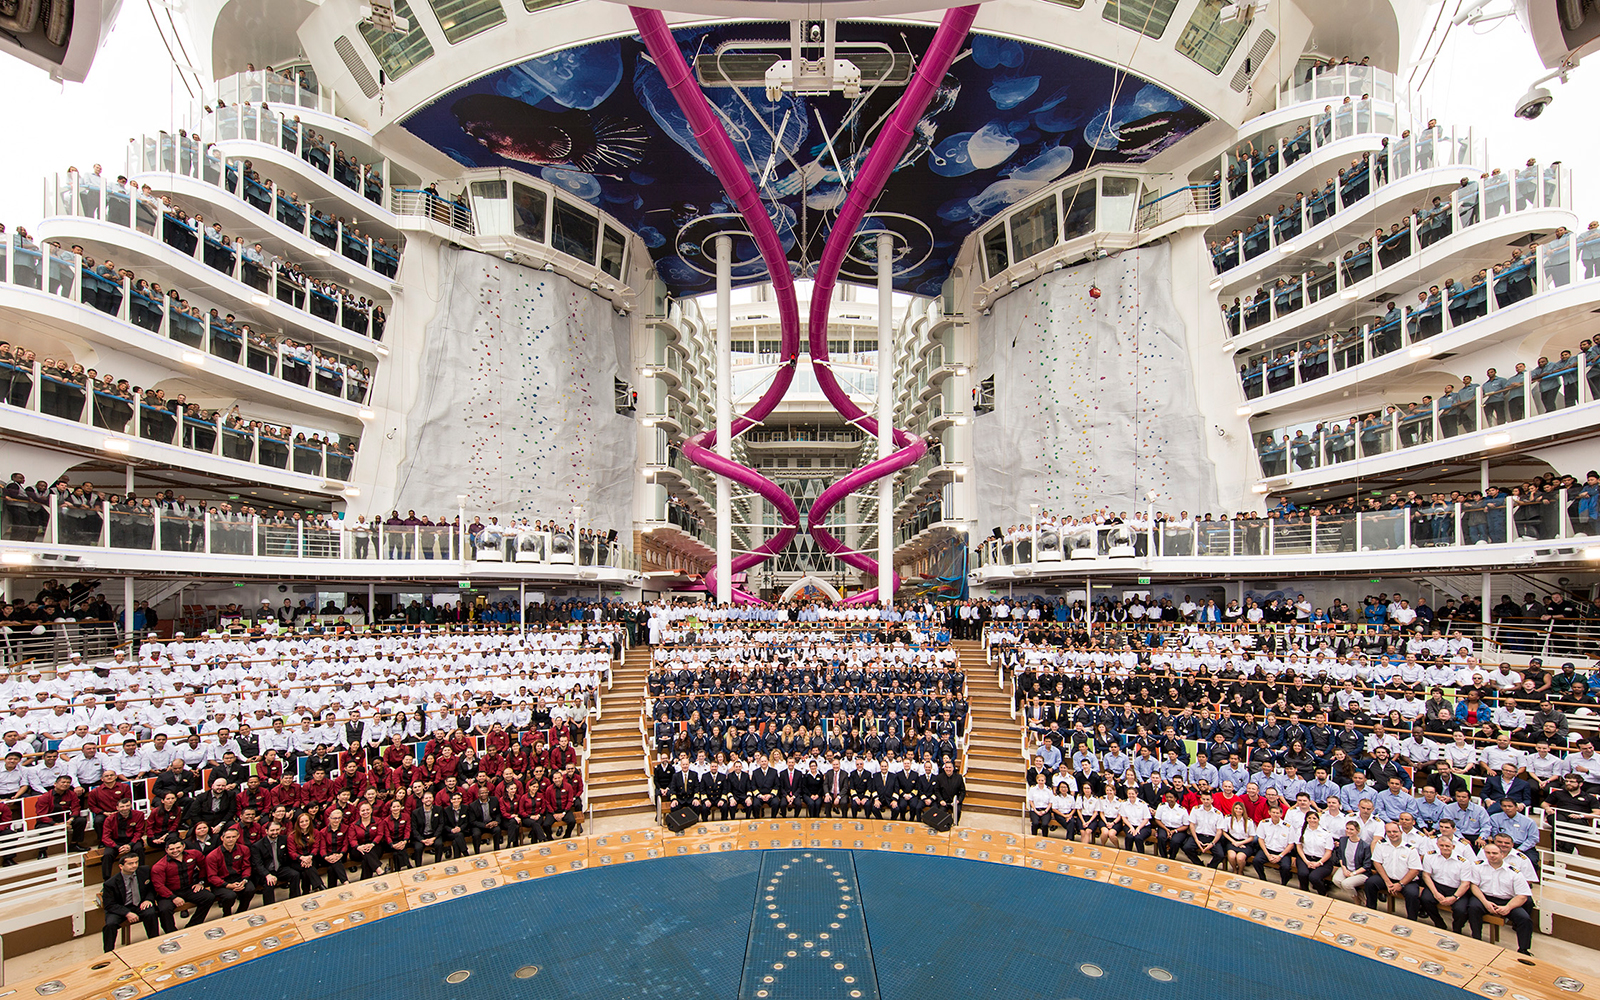 Harmony of the Seas ceremony